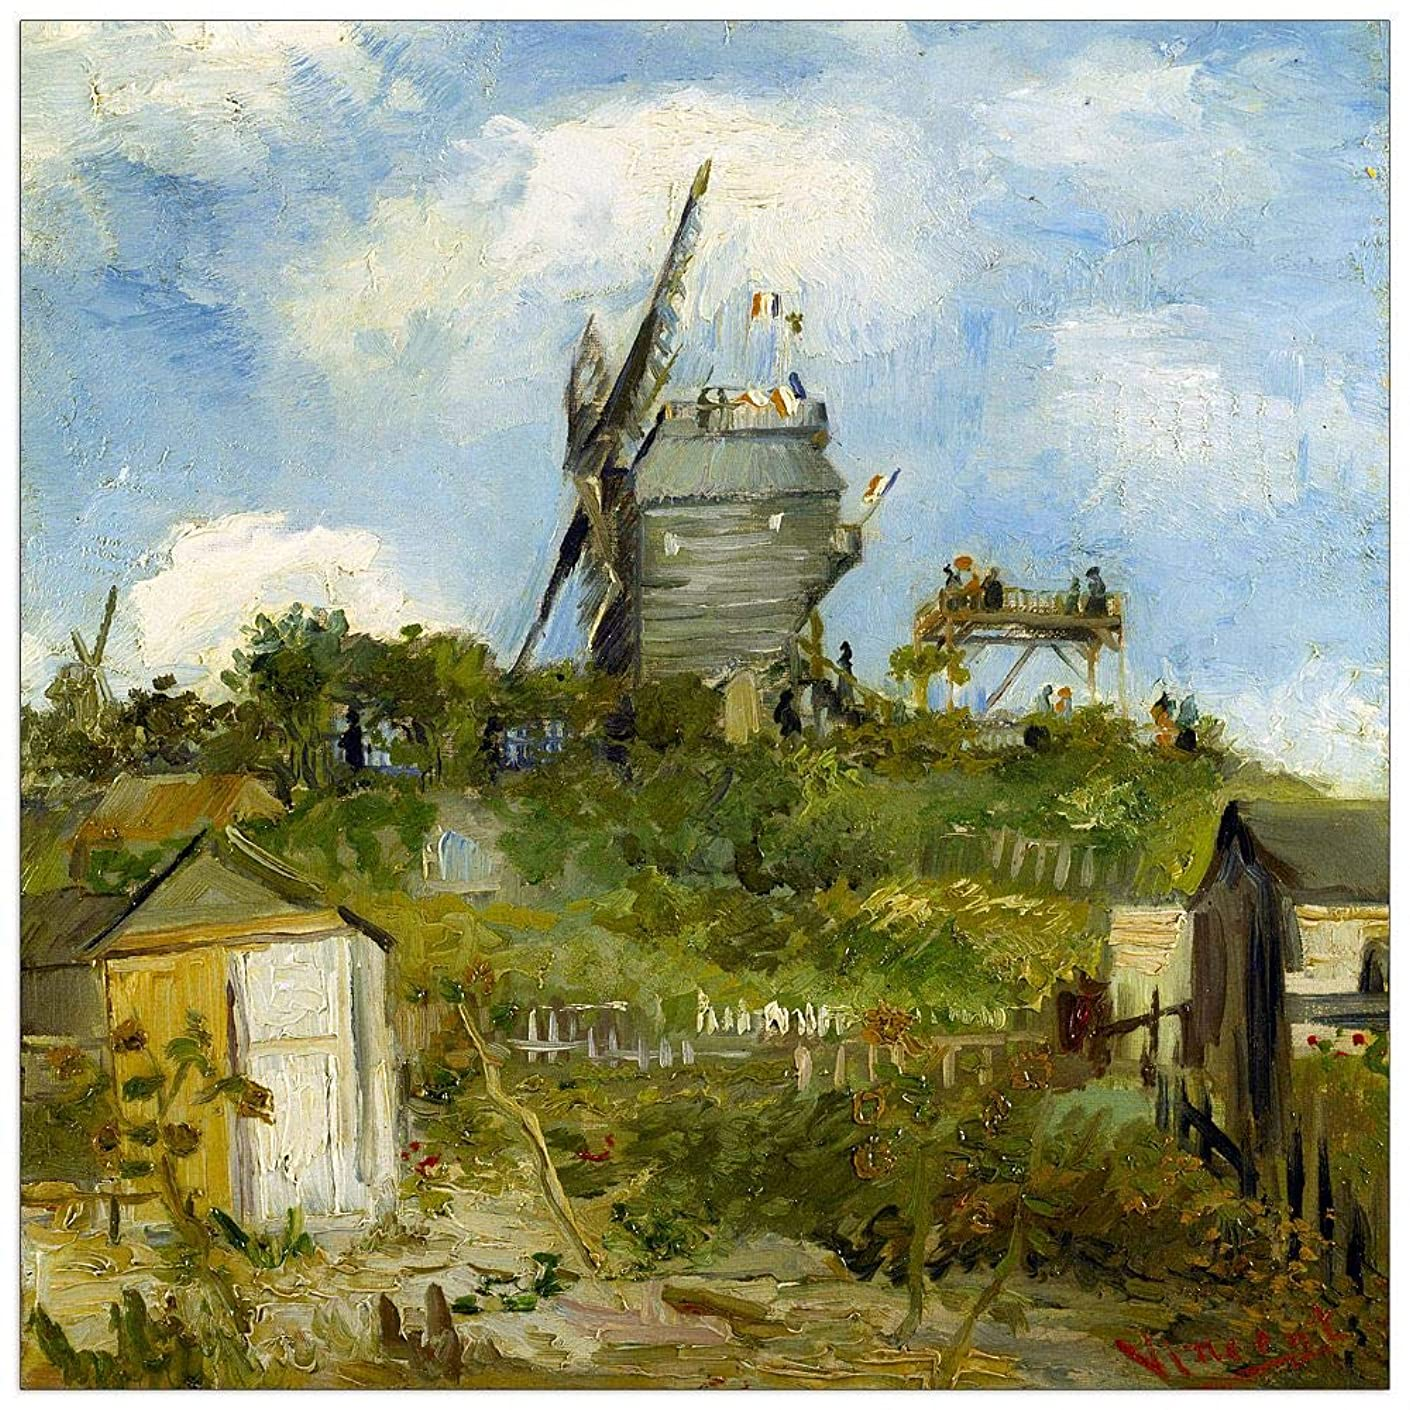 ArtPlaza TW90584 Van Gogh Vincent - Blut Fin Windmill Decorative Panel 31.5x31.5 Inch Multicolored